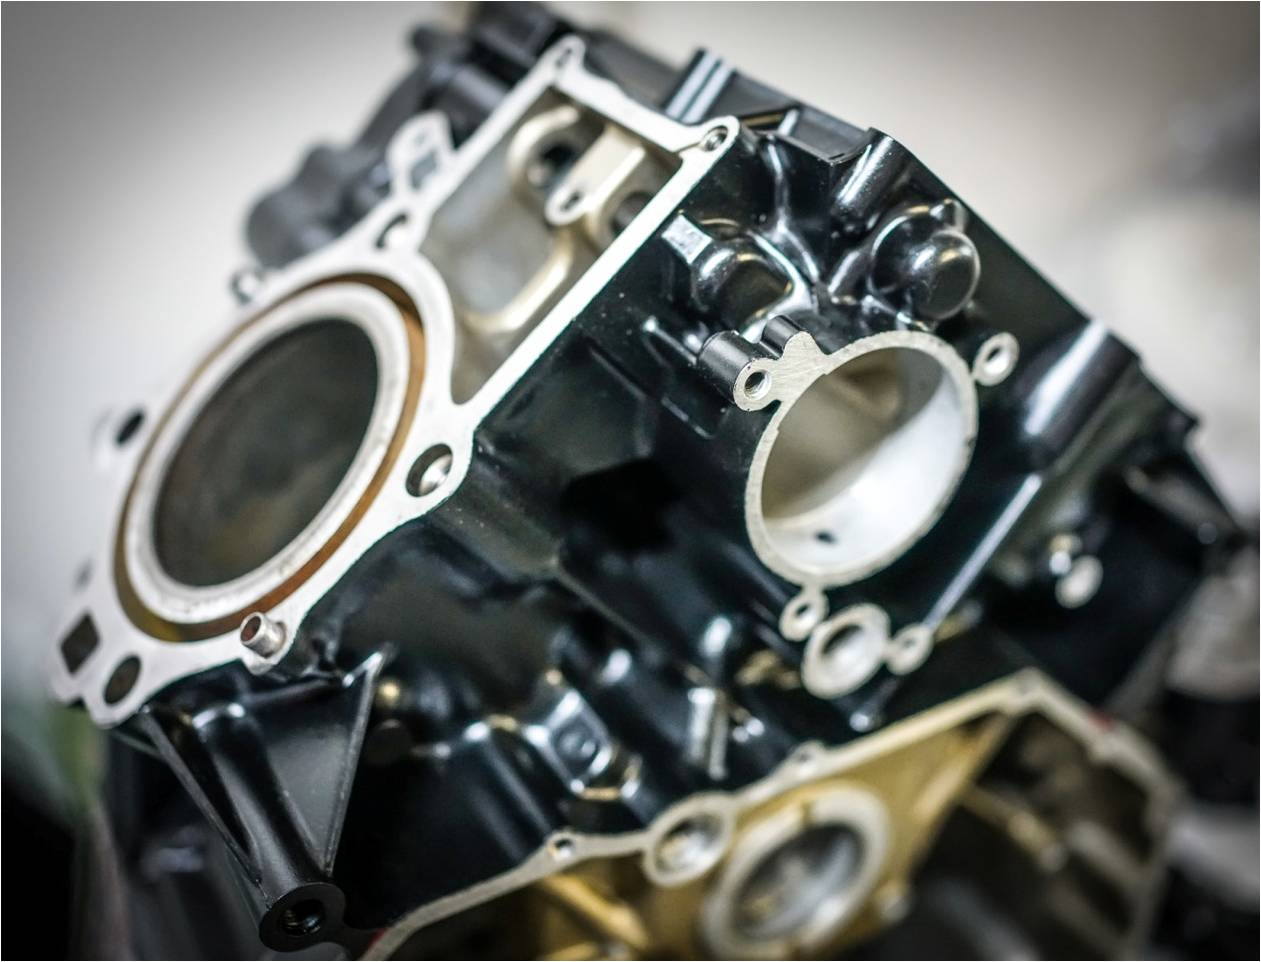 Cafe racer BT01 Engine